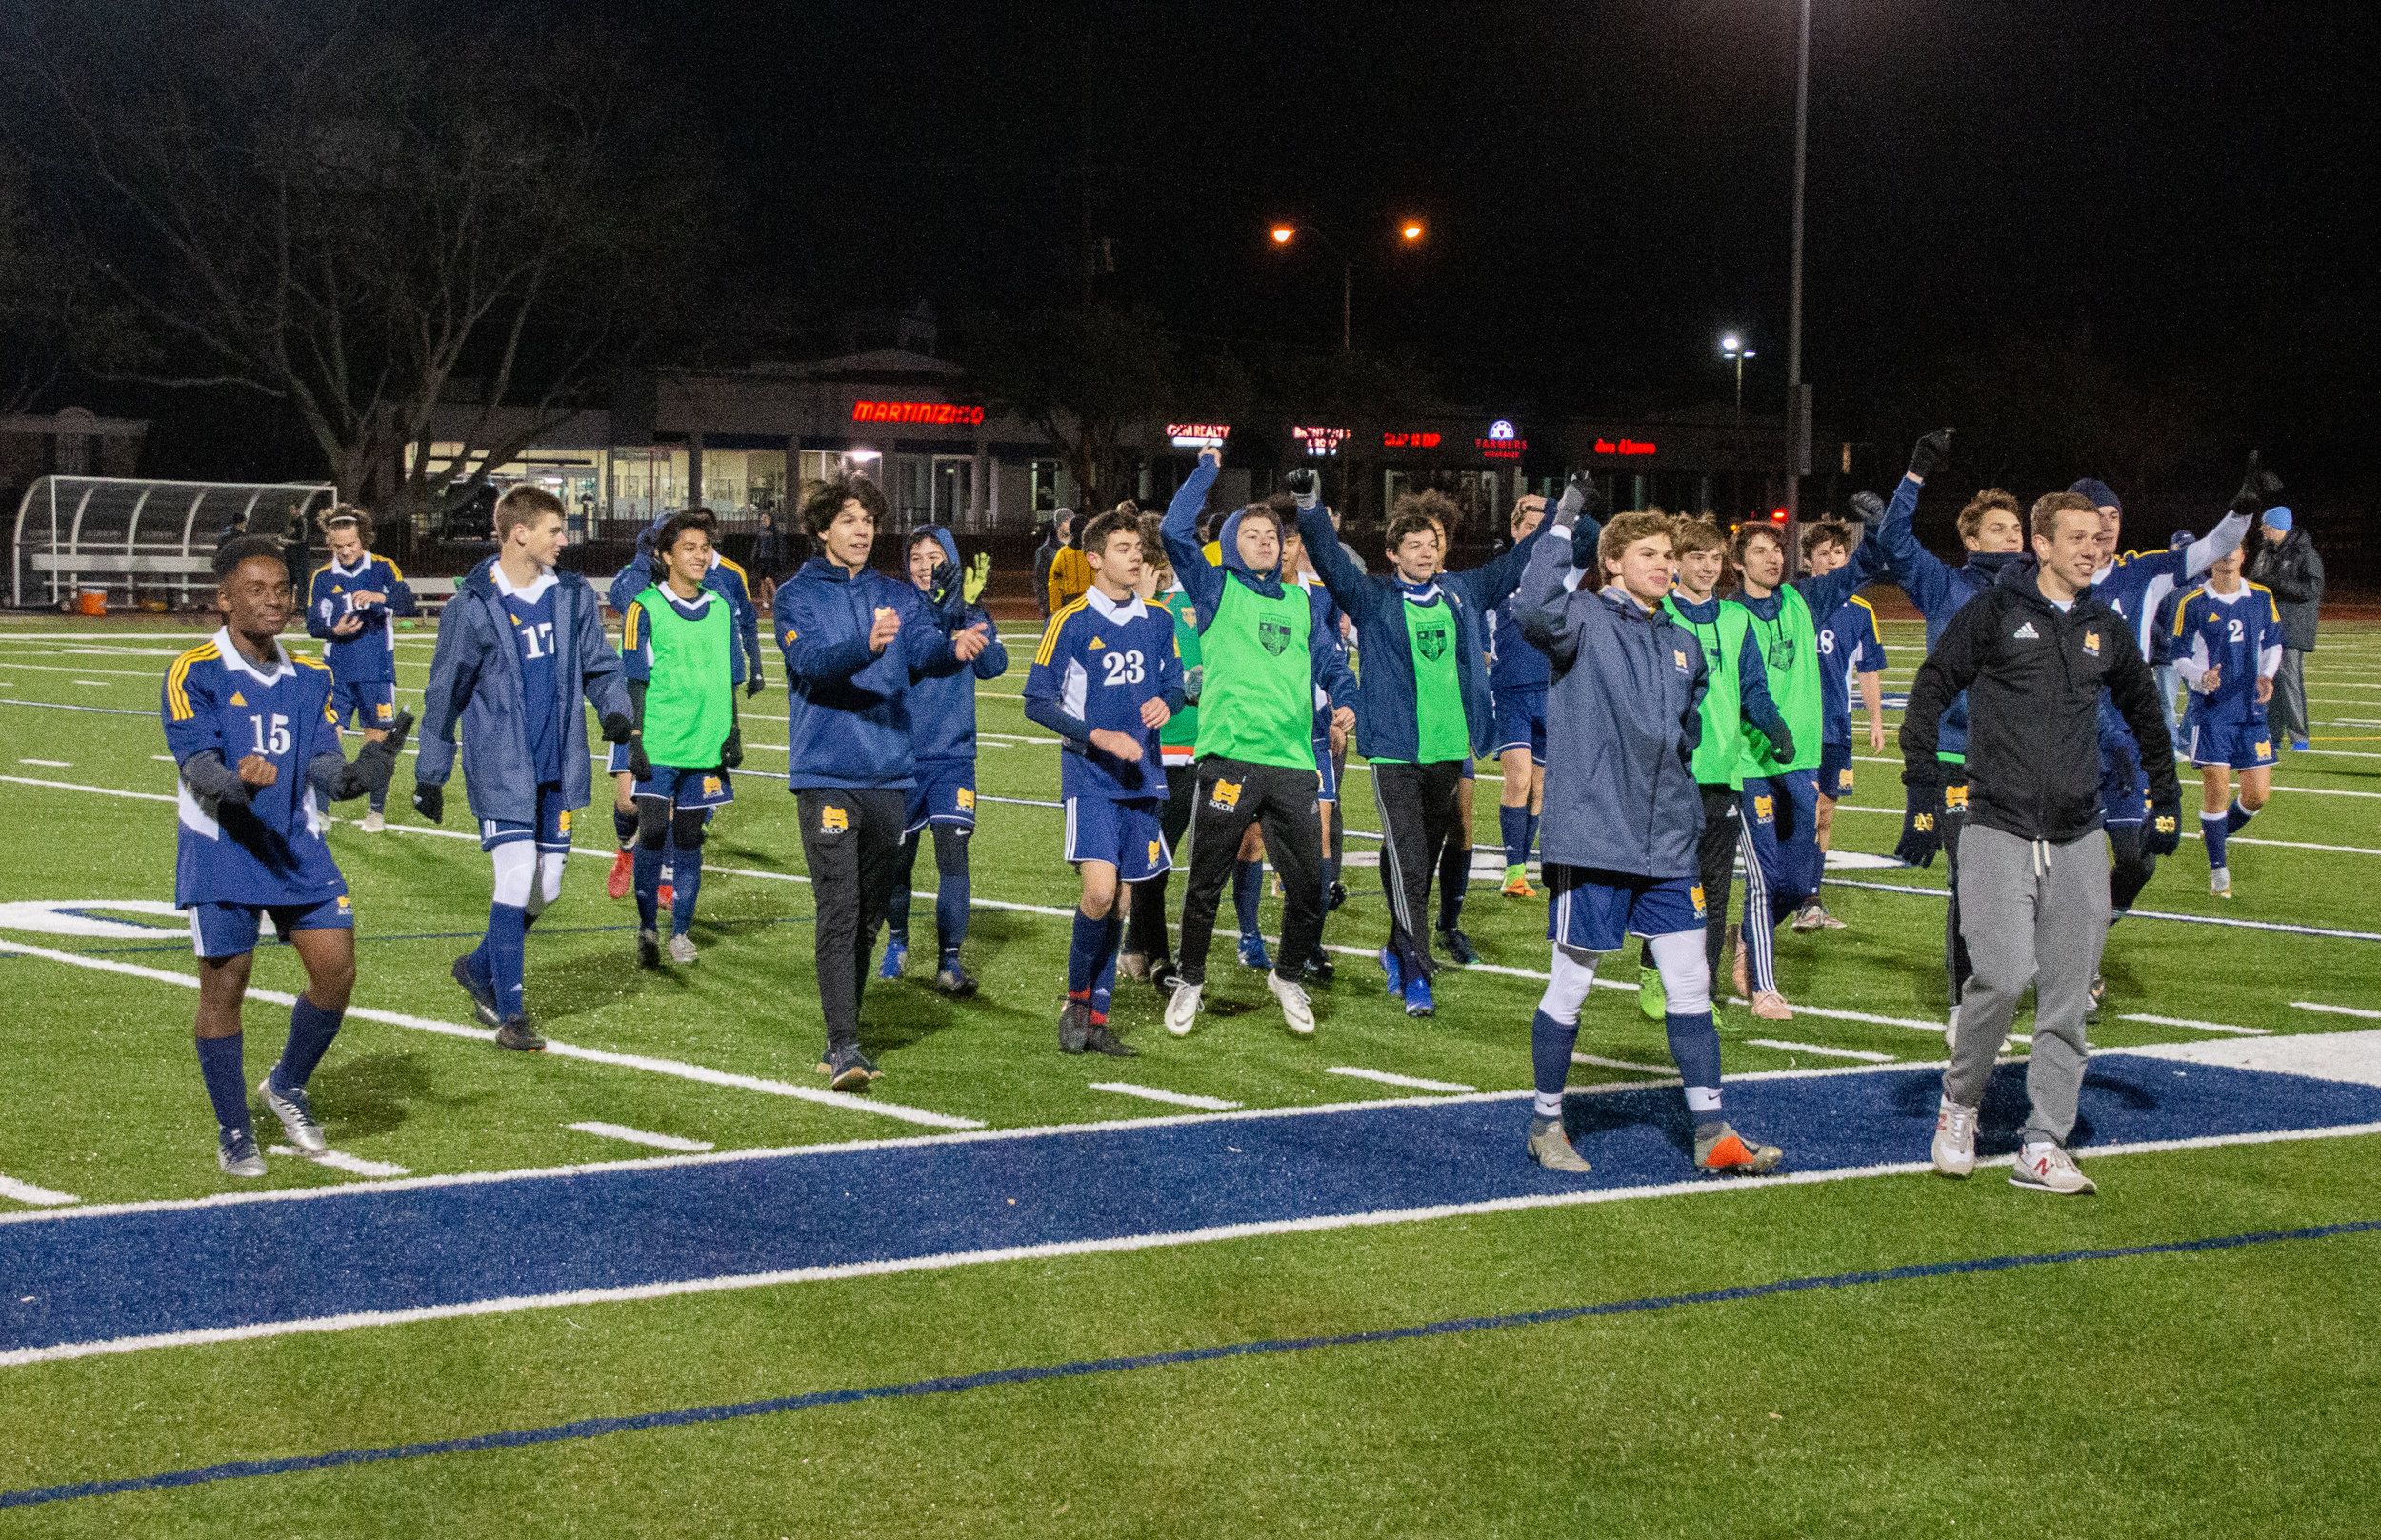 After defeating the Eagles 4-0, the Lions walk up to the screaming student section before singing the Alma Mater to cap off an undefeated night for St. Mark's athletics. By winning the game, the soccer team clinched the first seed heading into the conference tournament Feb. 15-16.